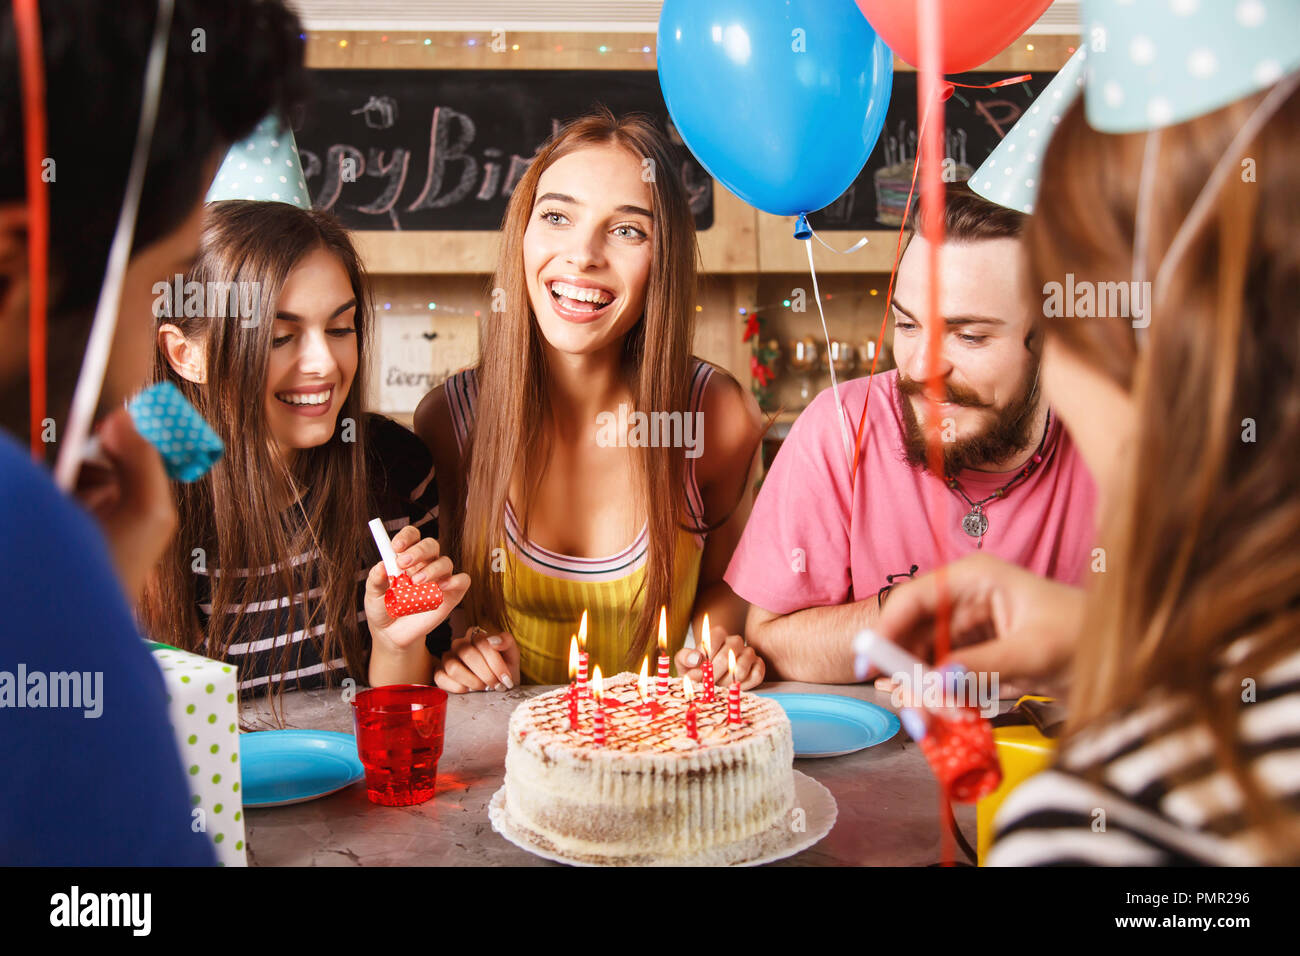 Five young adults celebrating a birthday party as they sitting around a table with cake and party hats - Stock Image